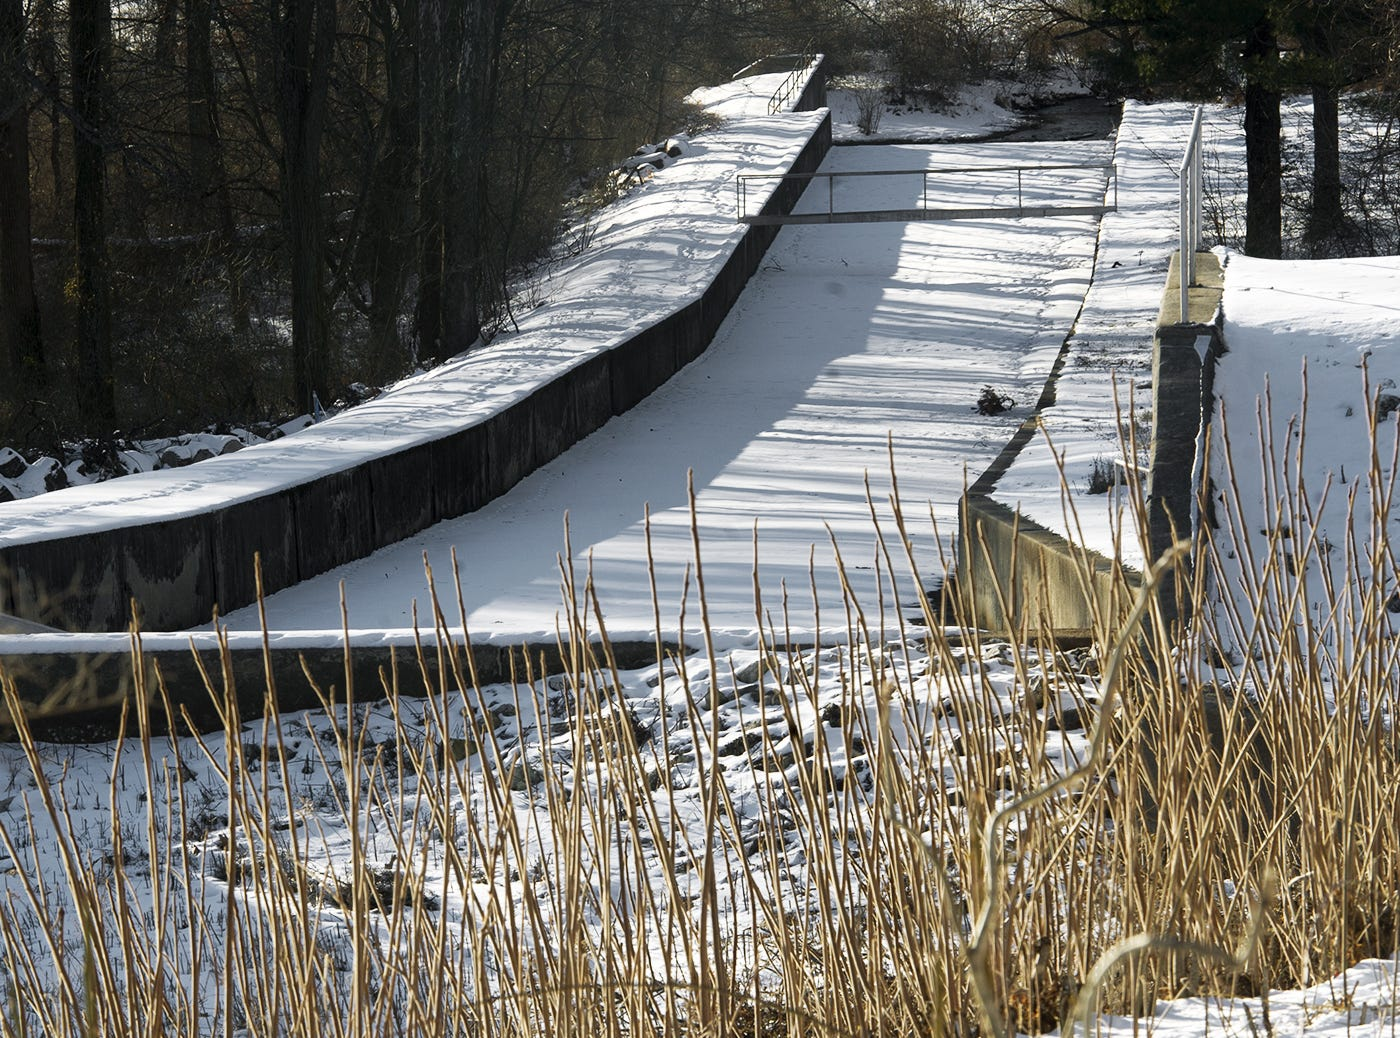 Part of a spillway at Lake Lehman in North Codorus Township Wednesday January 29, 2014.